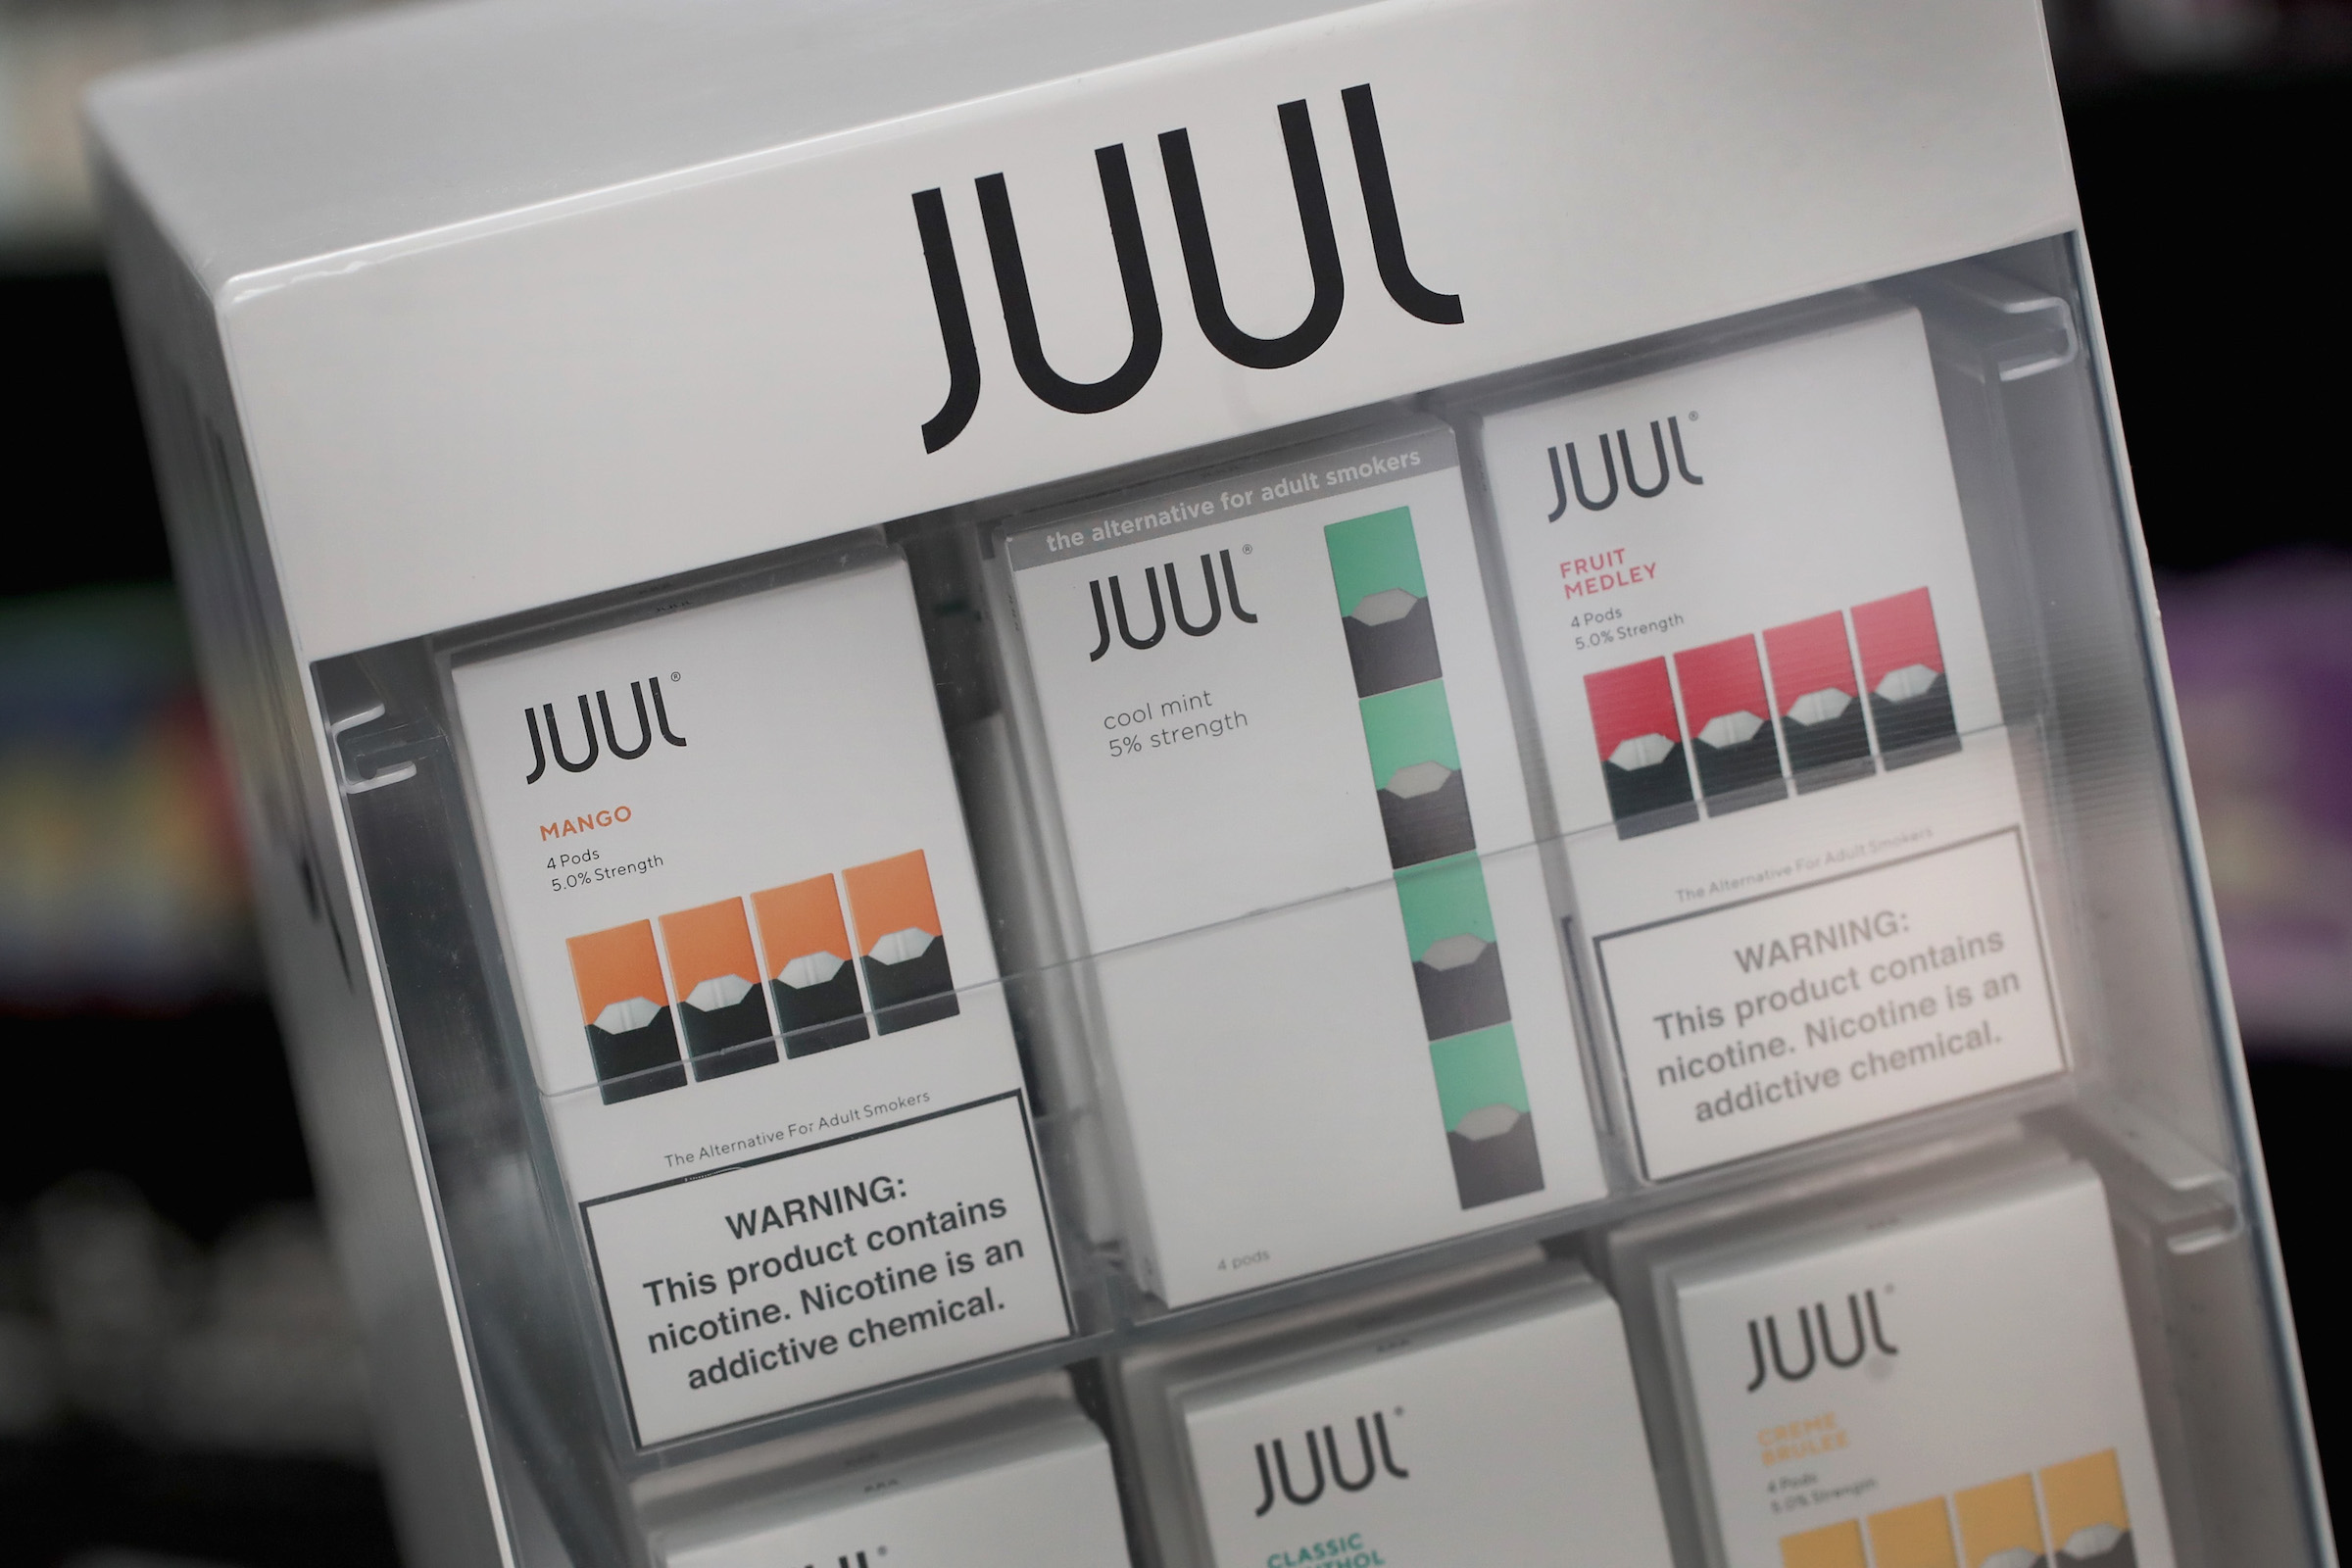 Electronic cigarettes and pods by Juul, the nation's largest maker of vaping products, are offered for sale at the Smoke Depot on September 13, 2018 in Chicago, Ill.